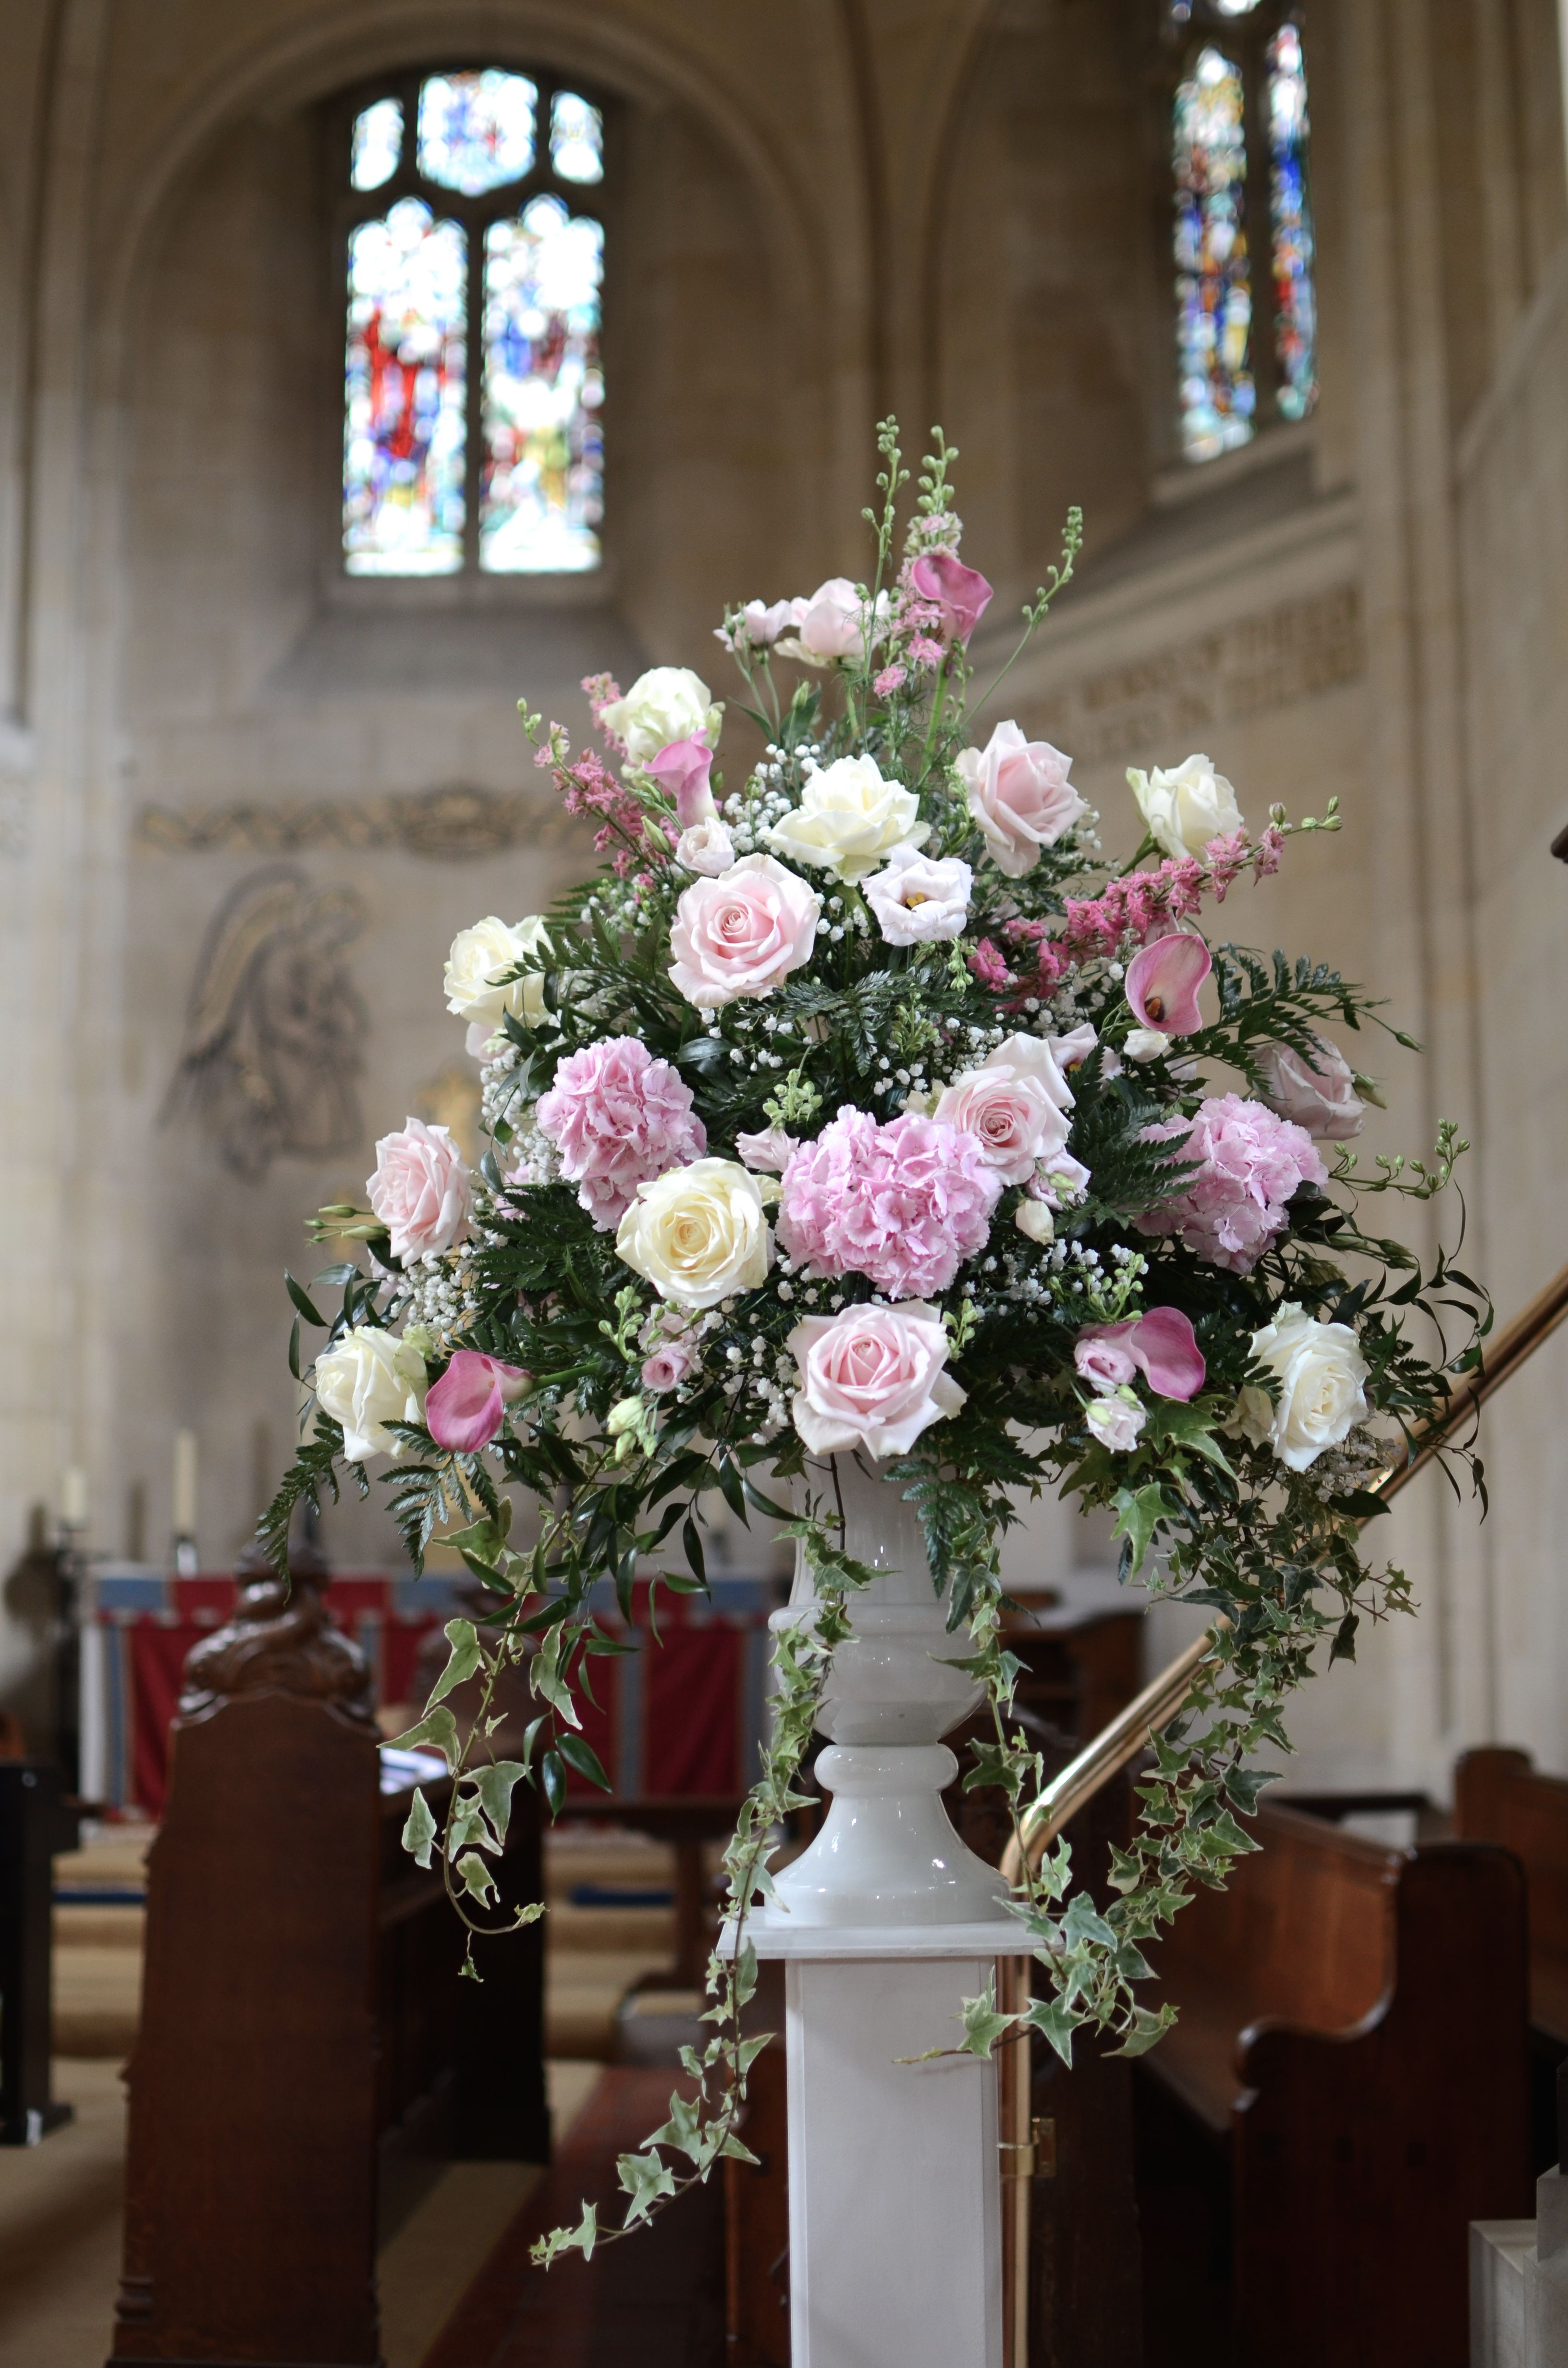 Traditional Pedestal Arrangement In Shades Of Pink In A White Urn